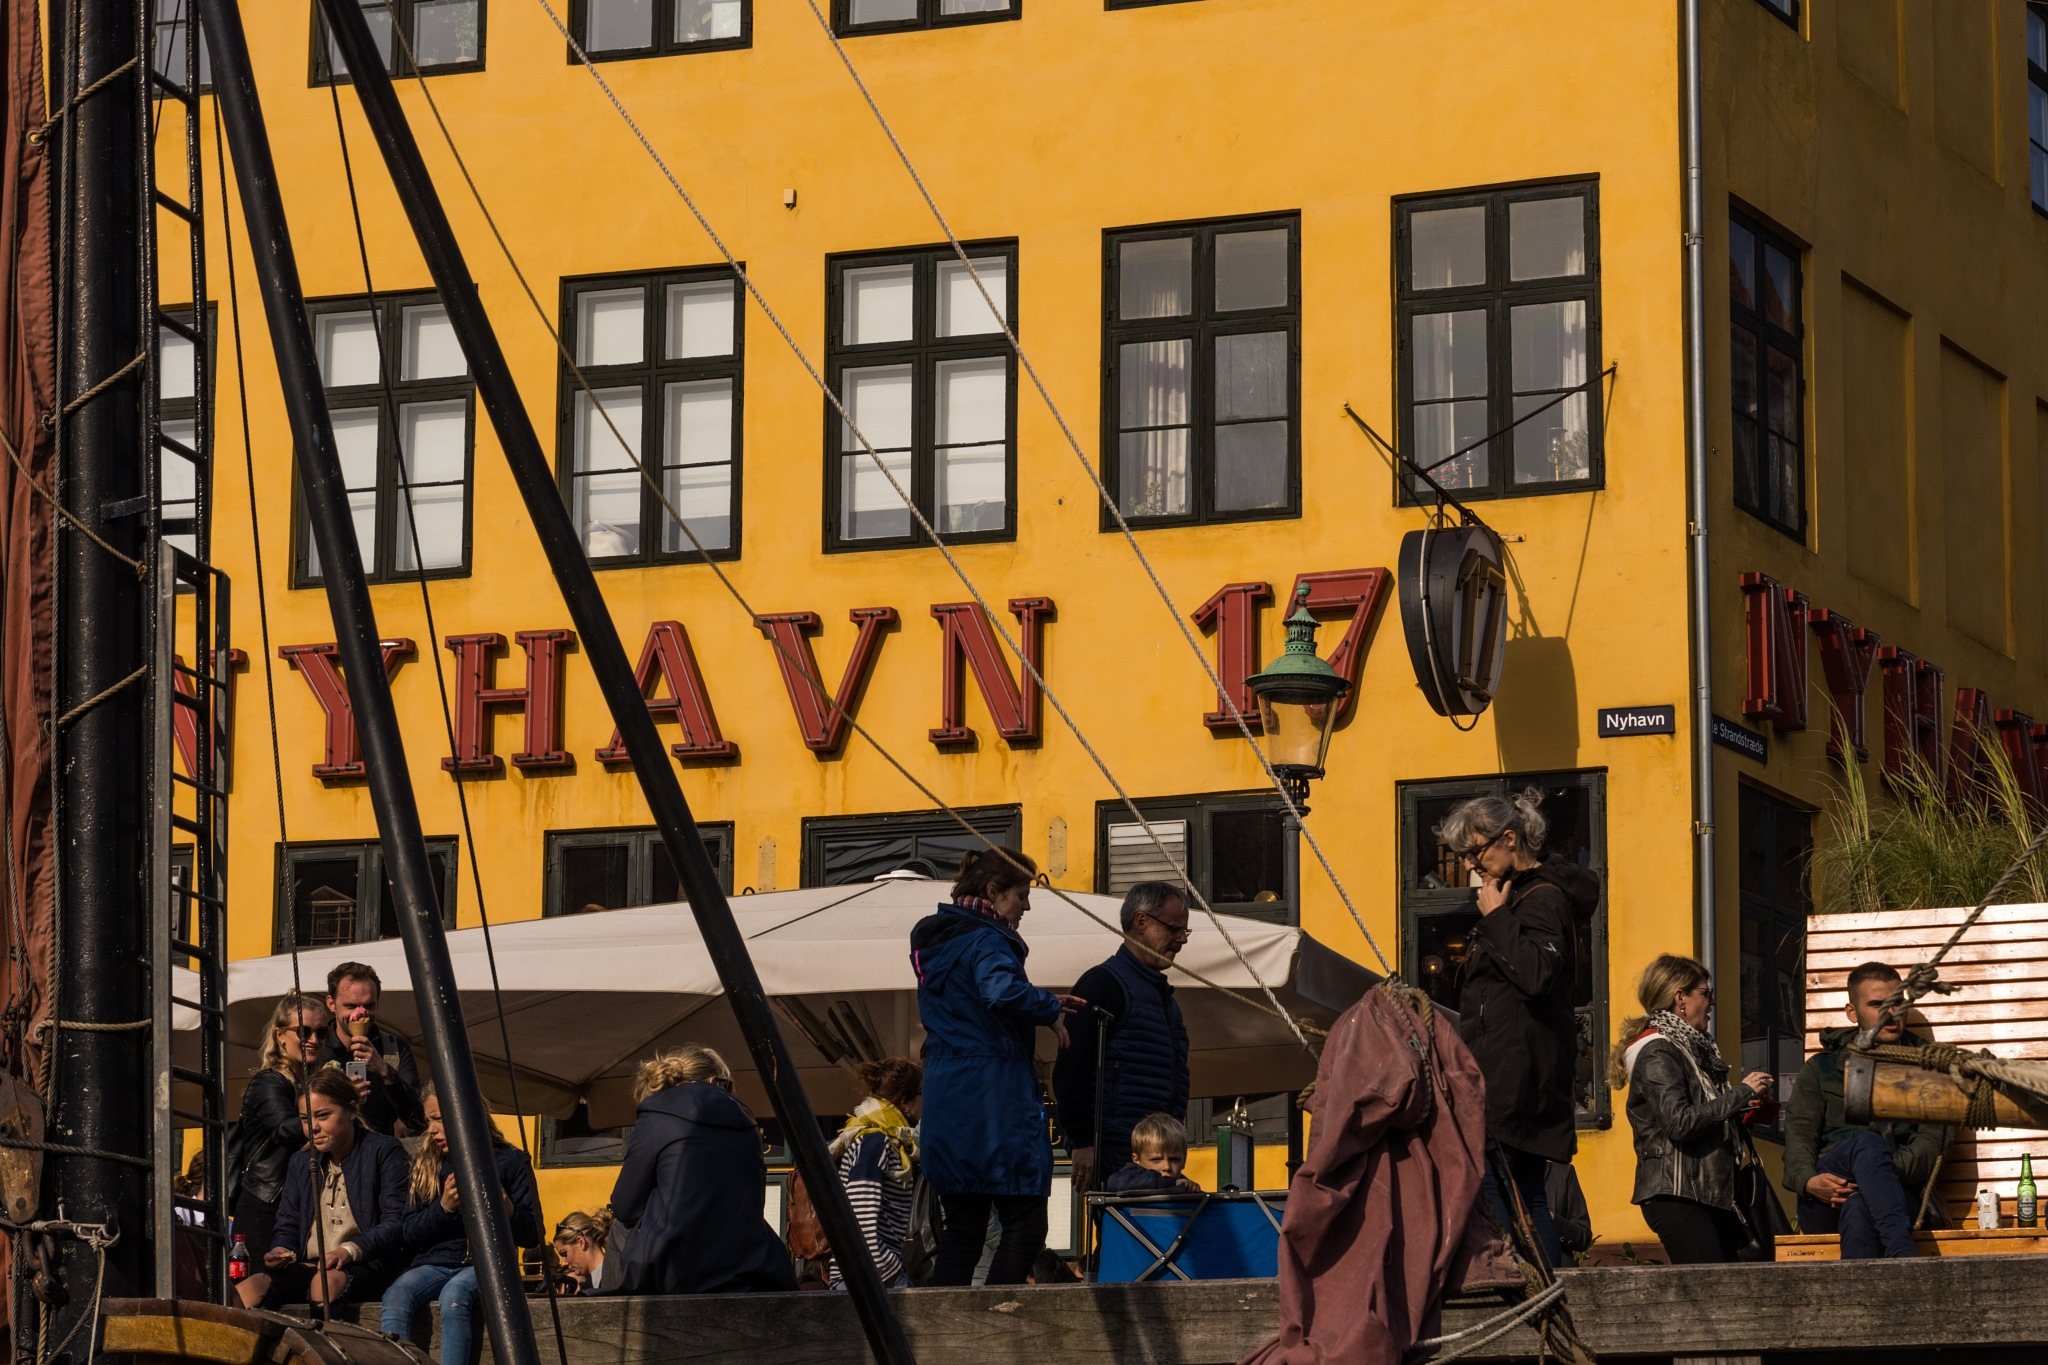 Nyhavn 17  by Johnny Lythell